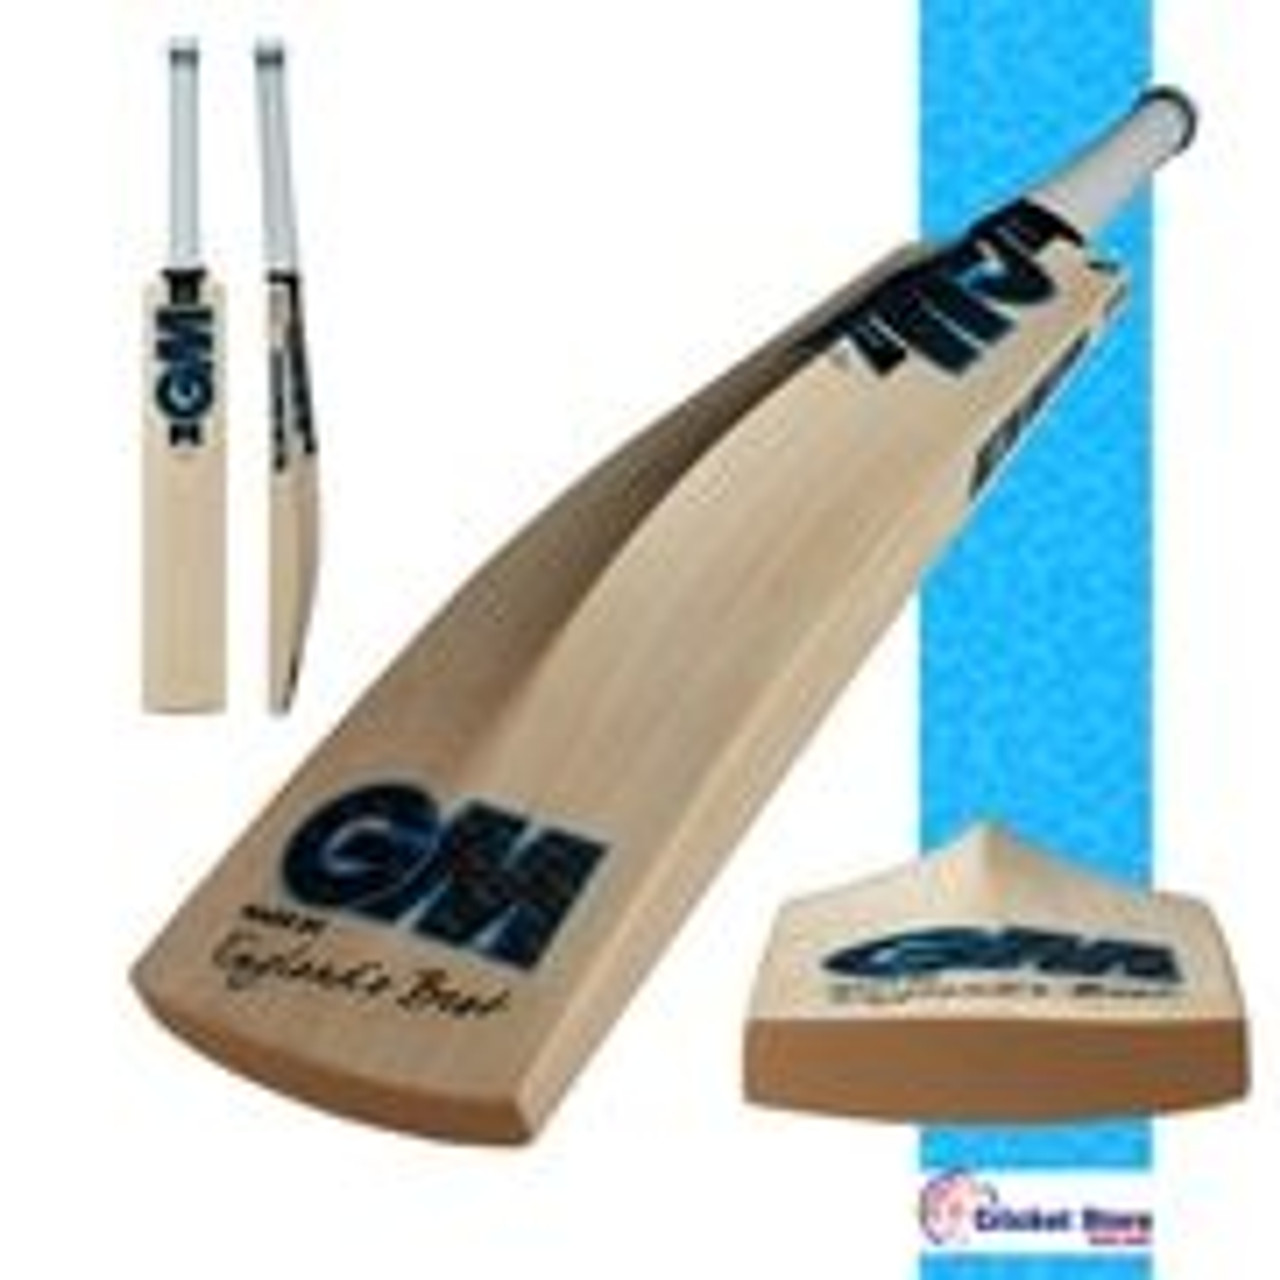 GM Neon Cricket Bats 2019